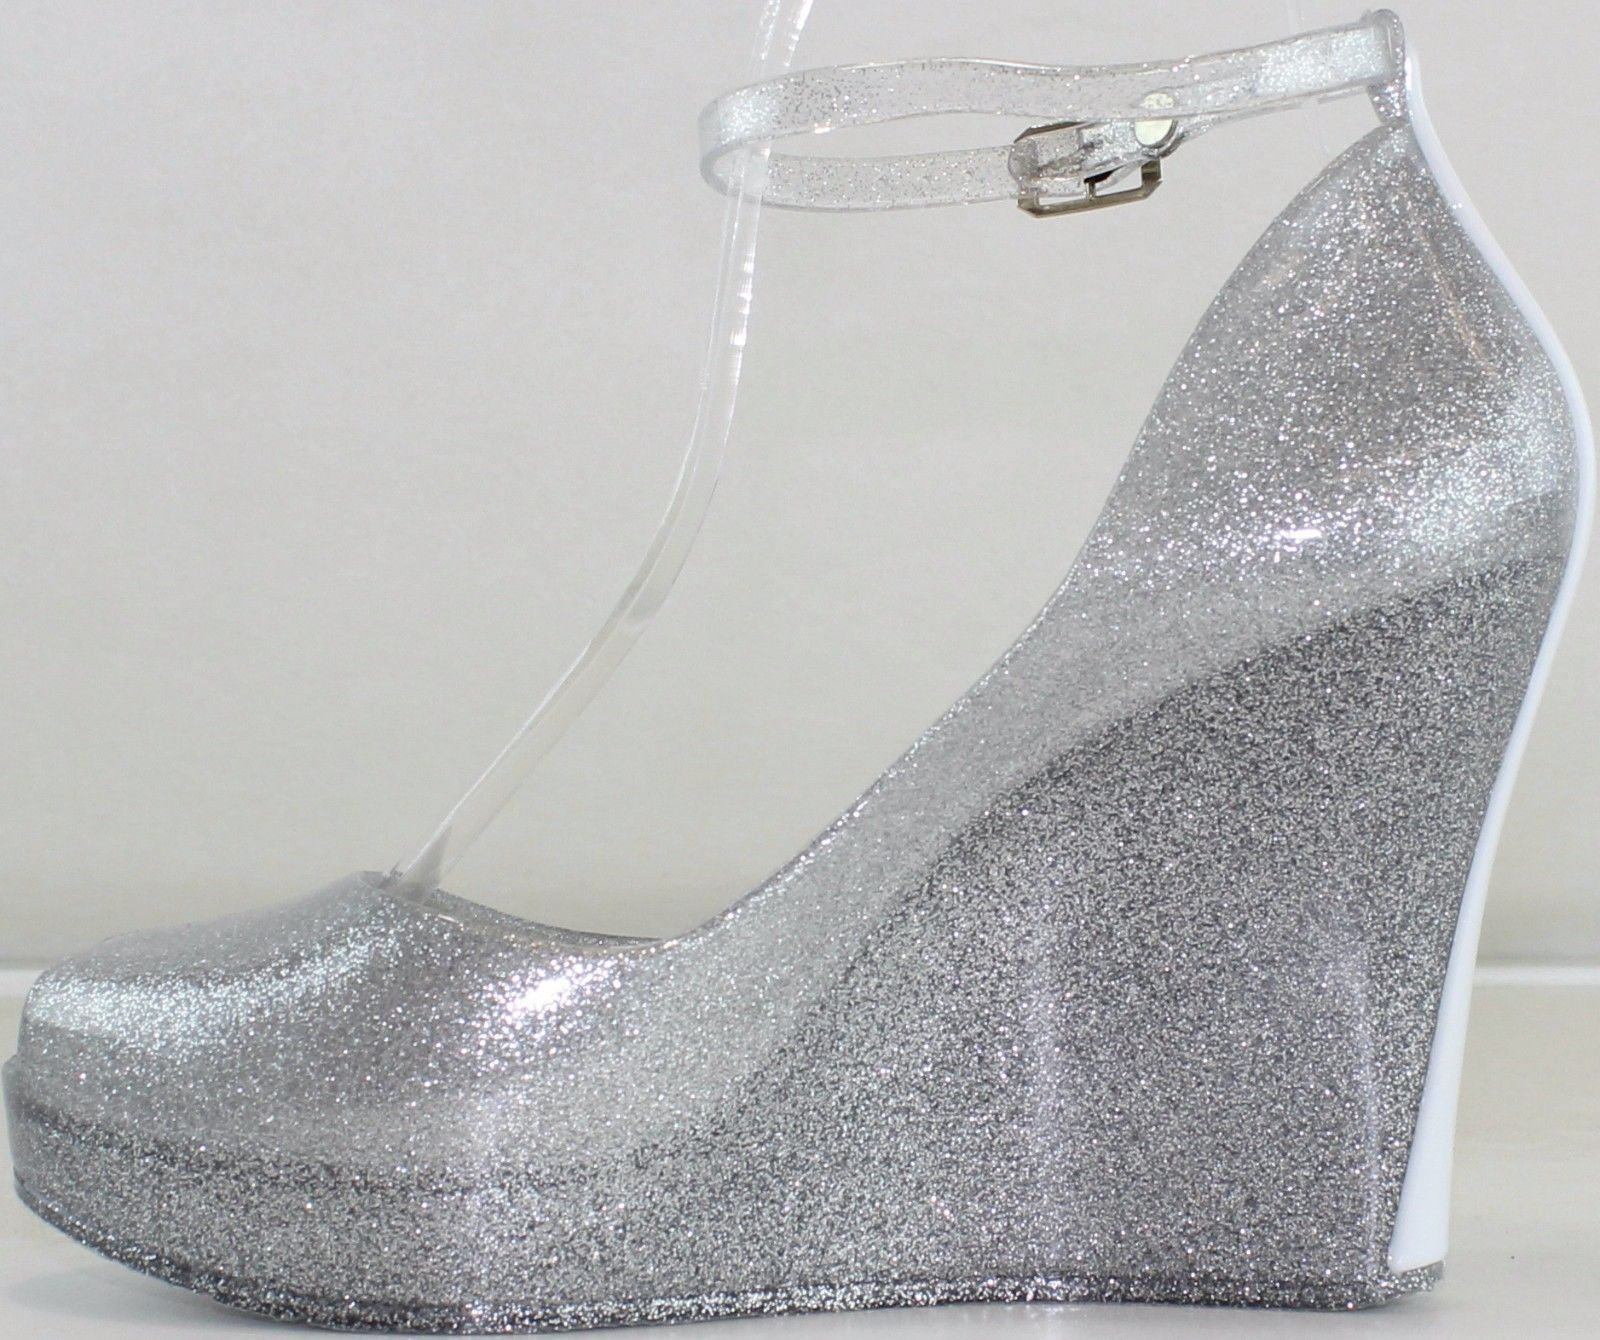 e9ee5bf48c6 Jelly heels toe pointed peep shoes original · Silver jelly glitter shoes  small